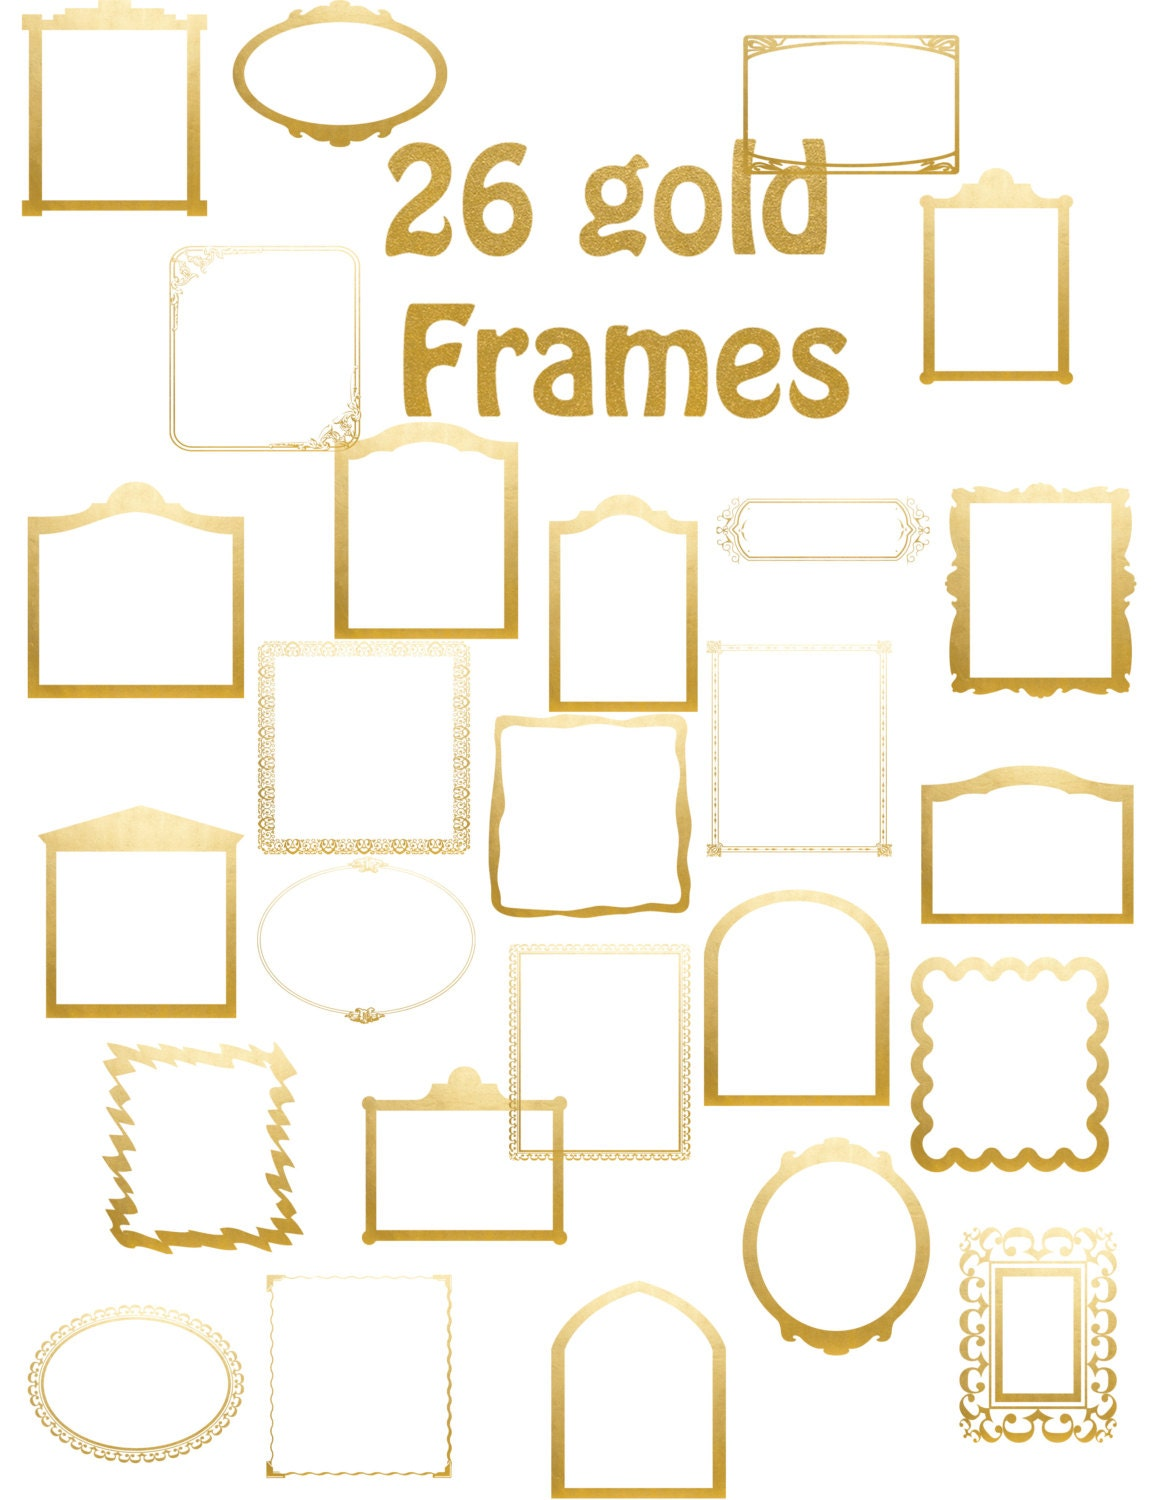 Frames Gold Glitter 26 Gold glitter Frames Collage by ...